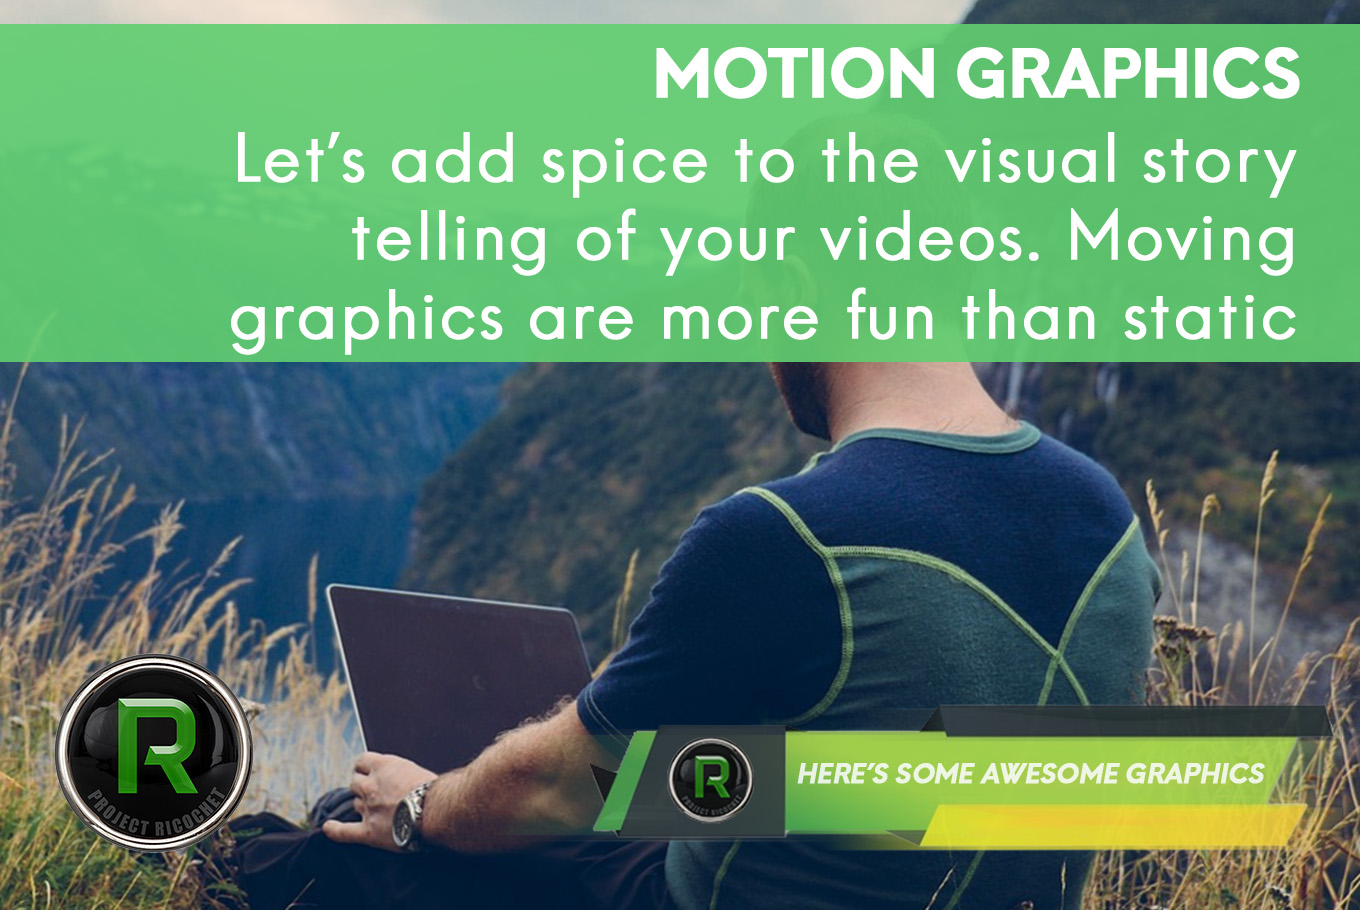 video and mograph - motion graphics